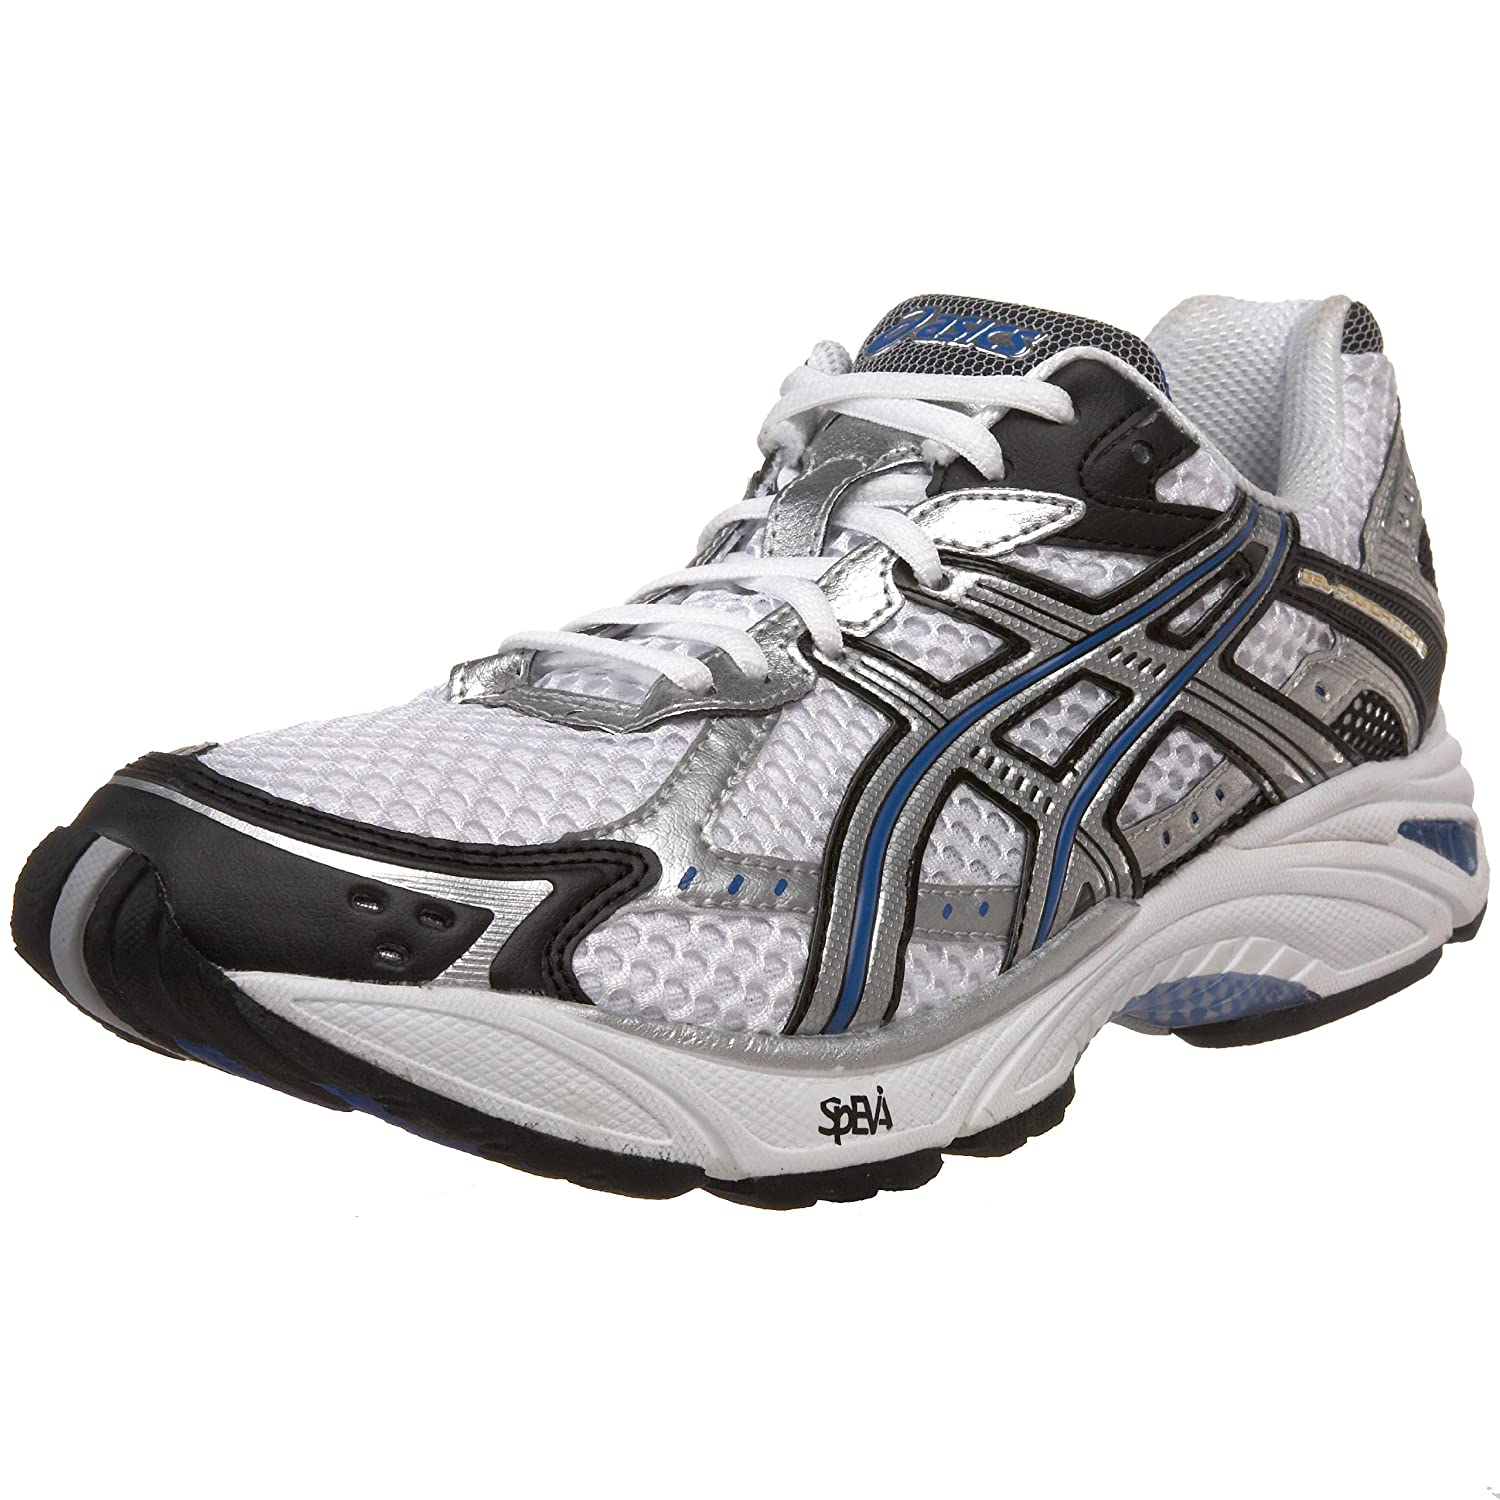 ASICS Men's GEL-Foundation 9 Running Shoe,White/Lightning/Royal,9.5 2E US